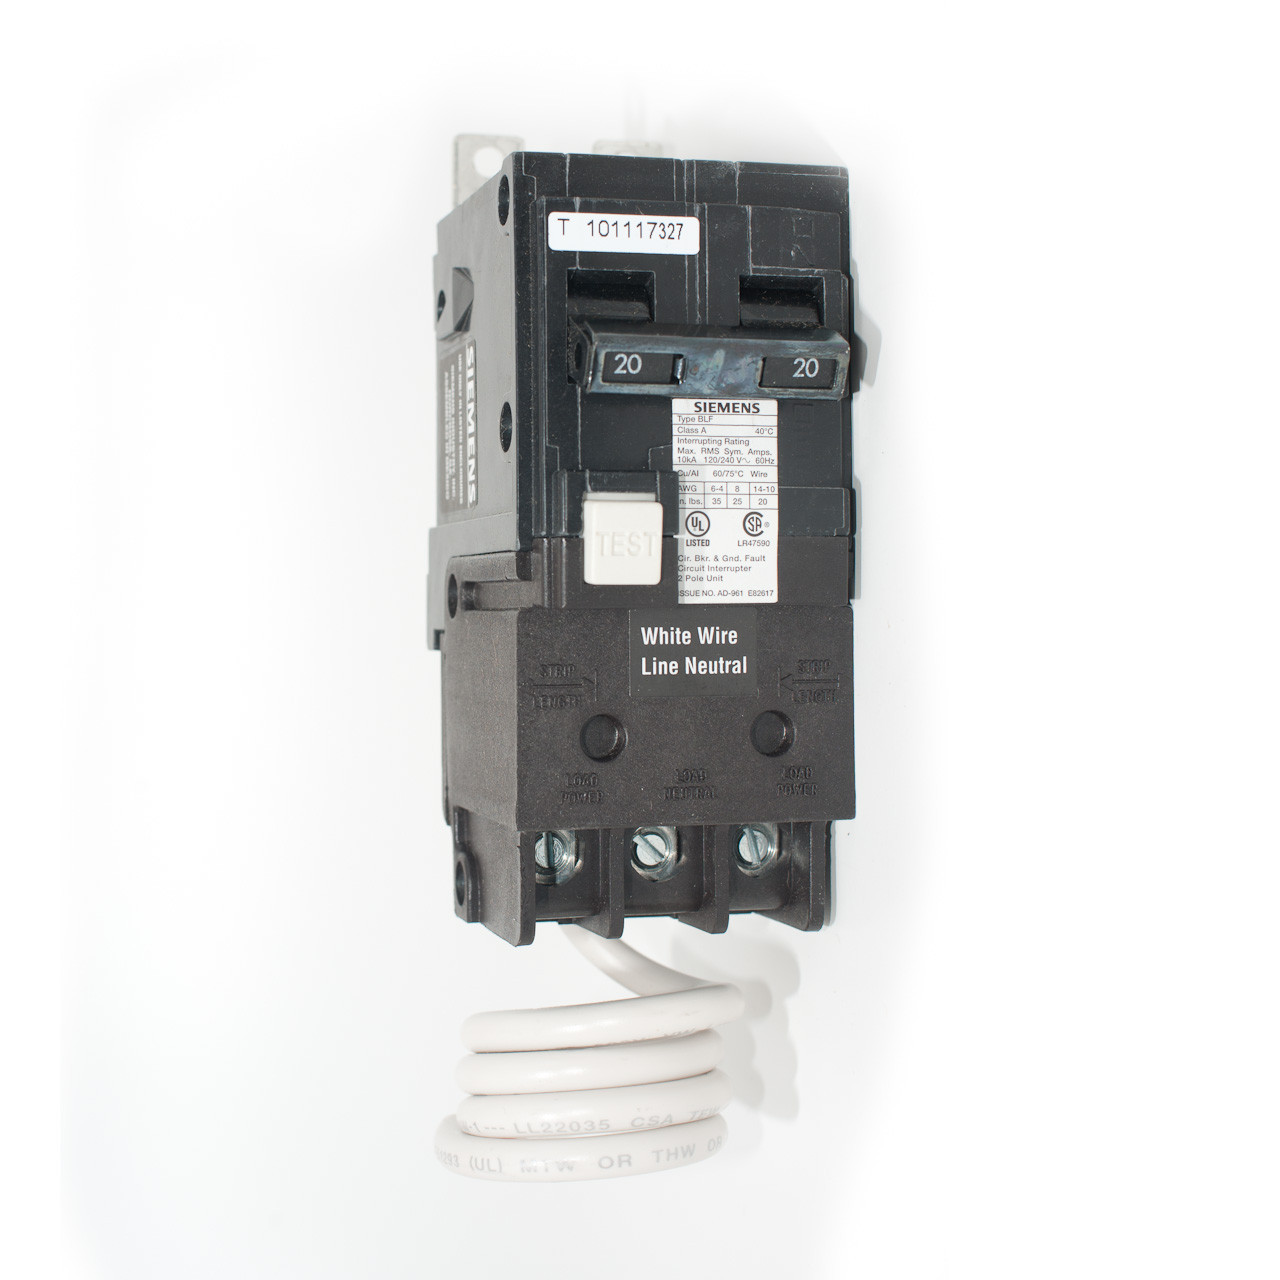 Siemens BF220 20A Two Pole GFCI Bolt-On Breaker